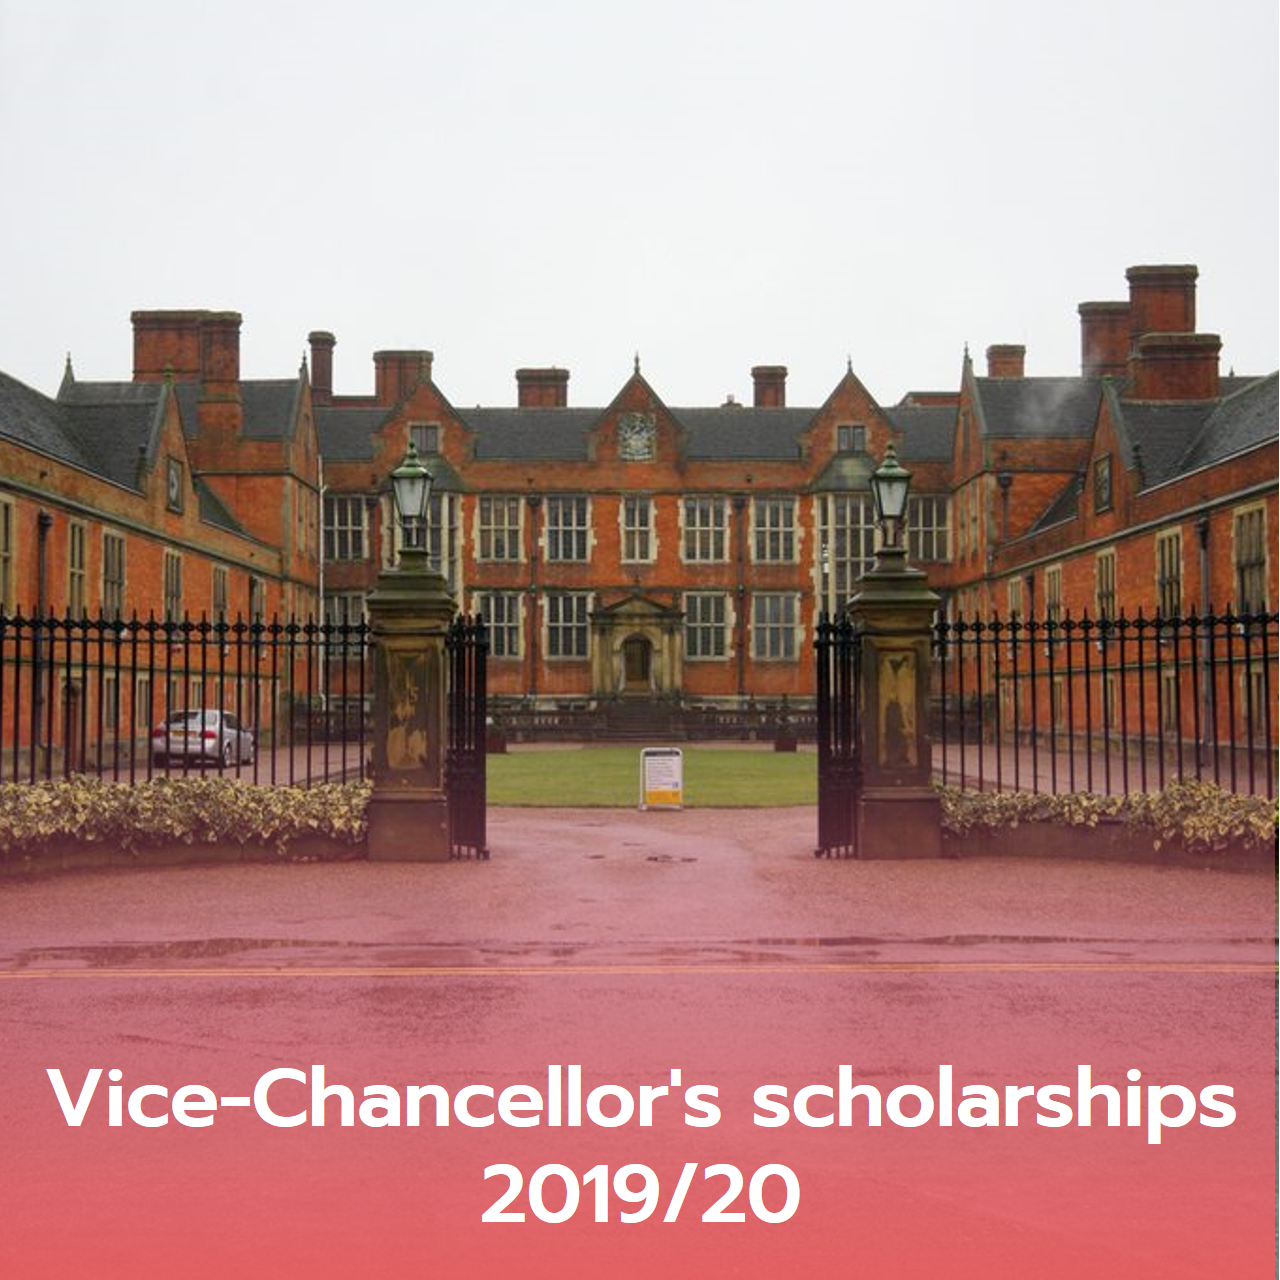 Vice-Chancellor's scholarships 2019/20